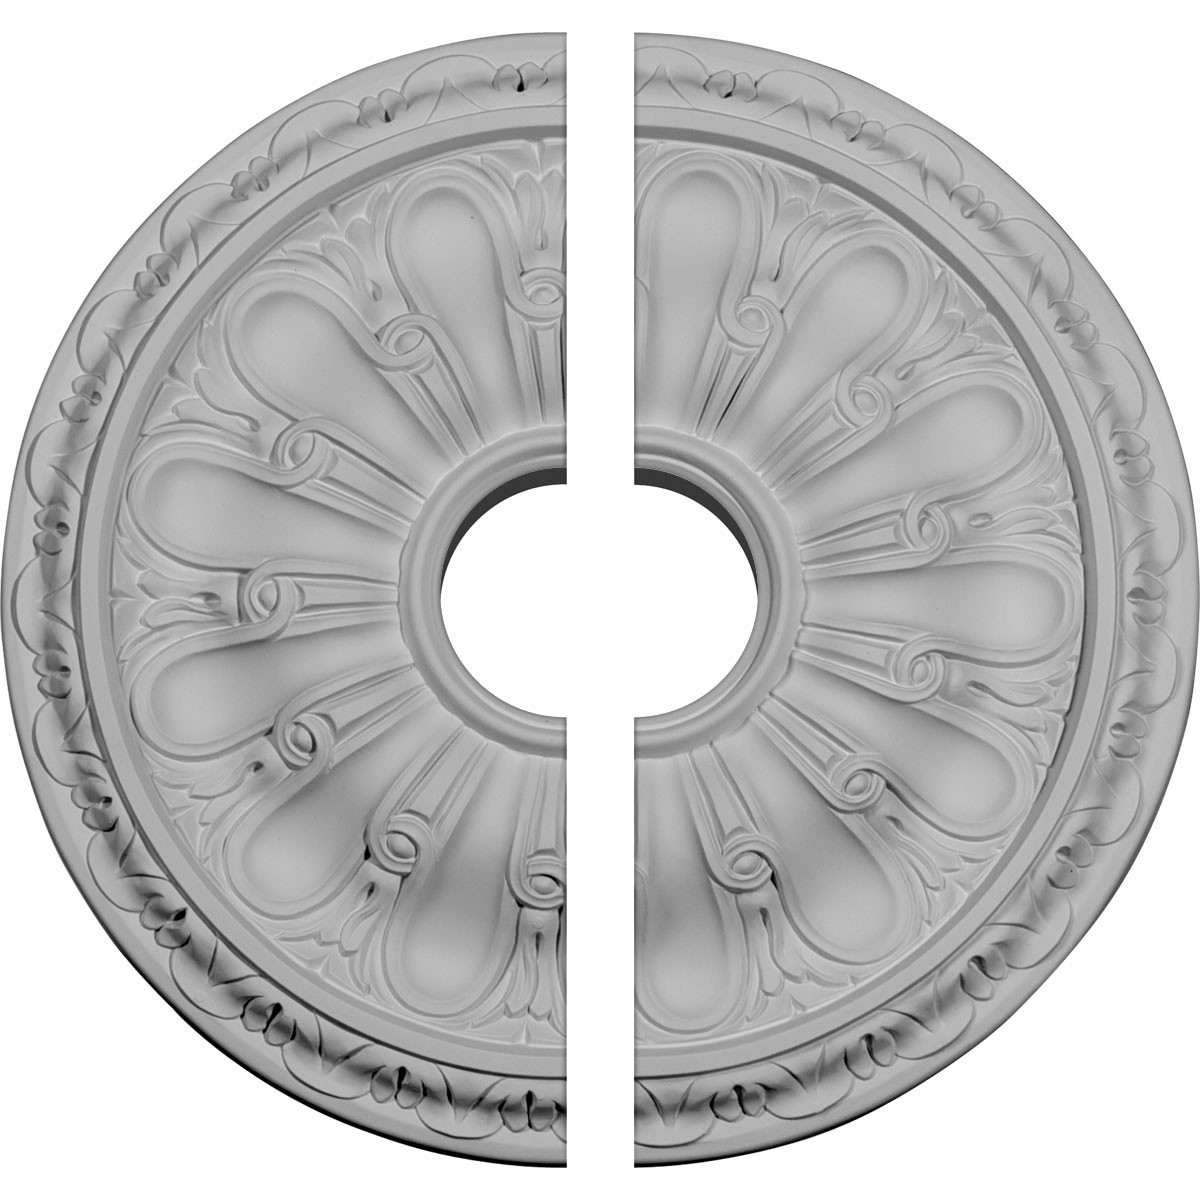 "EM-CM16KI2-03500 - 15 3/4""OD x 3 1/2""ID x 5/8""P Kirke Ceiling Medallion, Two Piece (Fits Canopies up to 3 3/4"")"